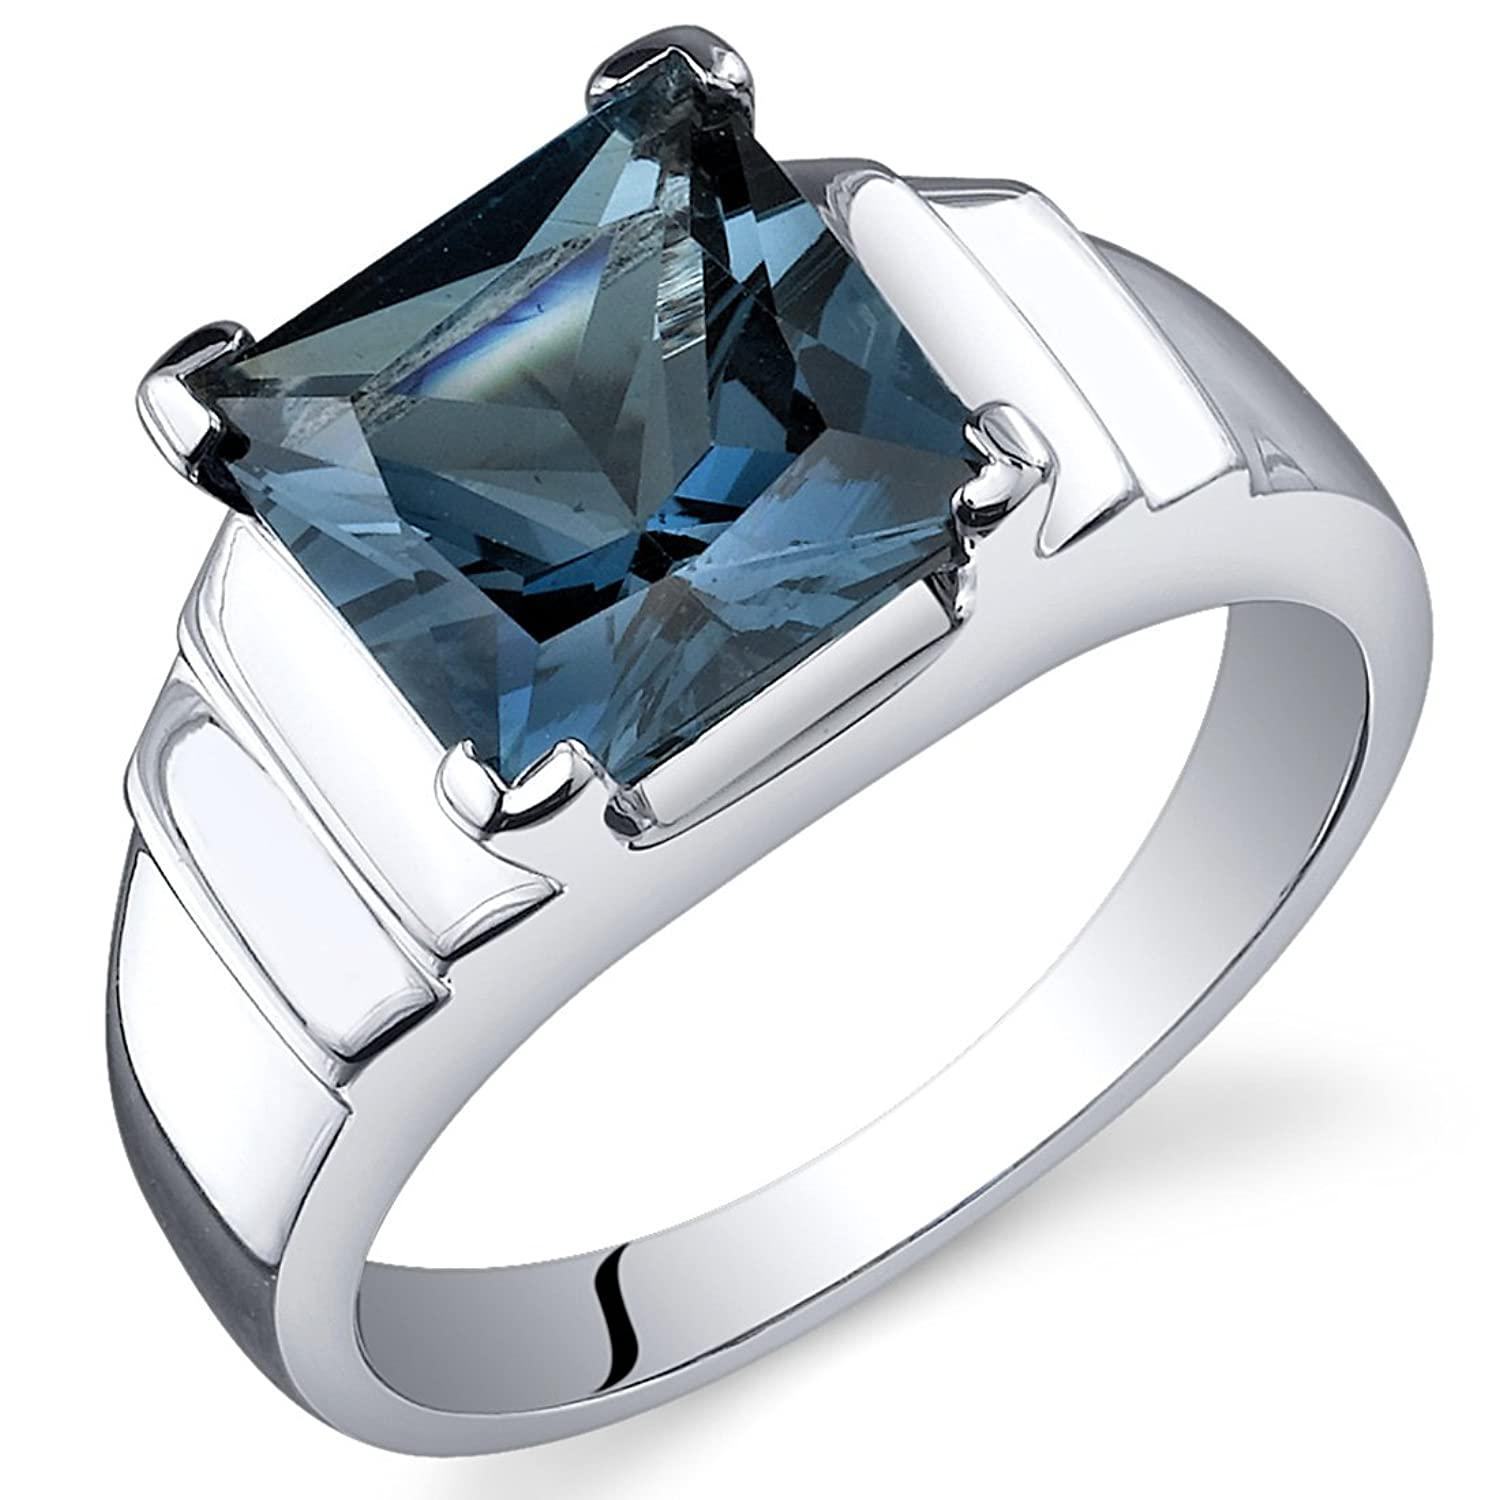 London Blue Topaz Princess Ring Sterling Silver Rhodium Nickel Finish 2.75 Carats Sizes 5 to 9